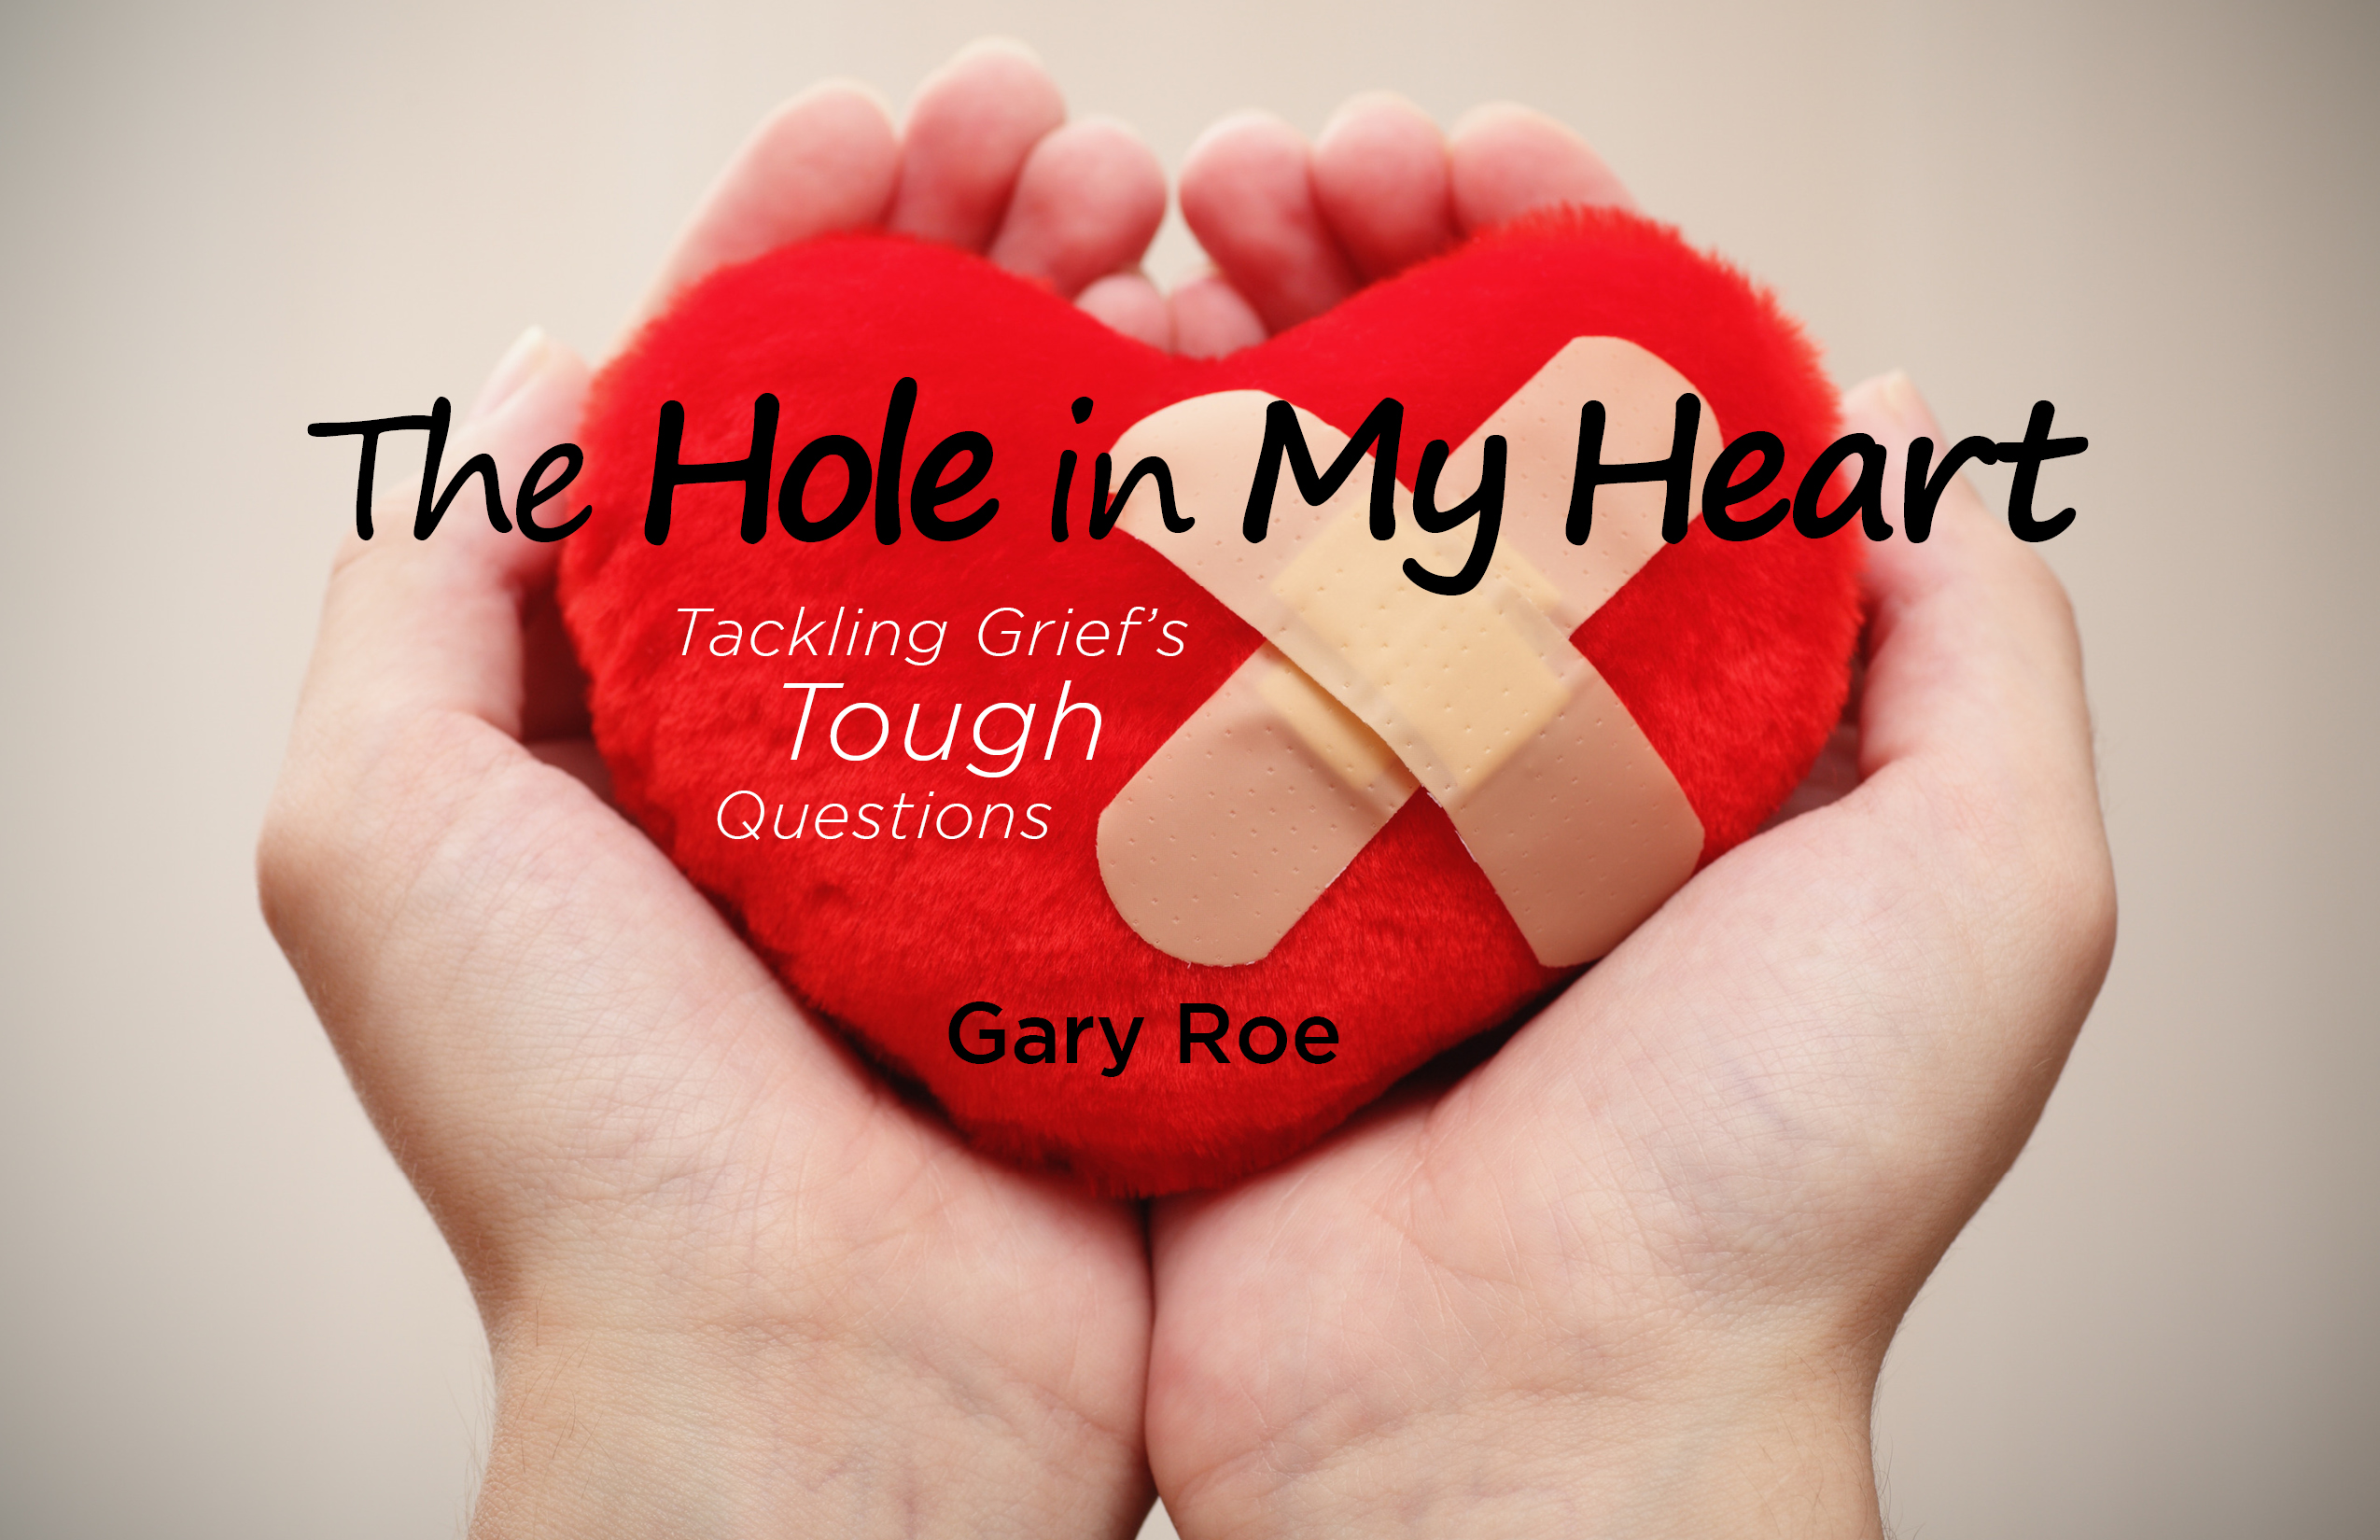 The Hole in My Heart